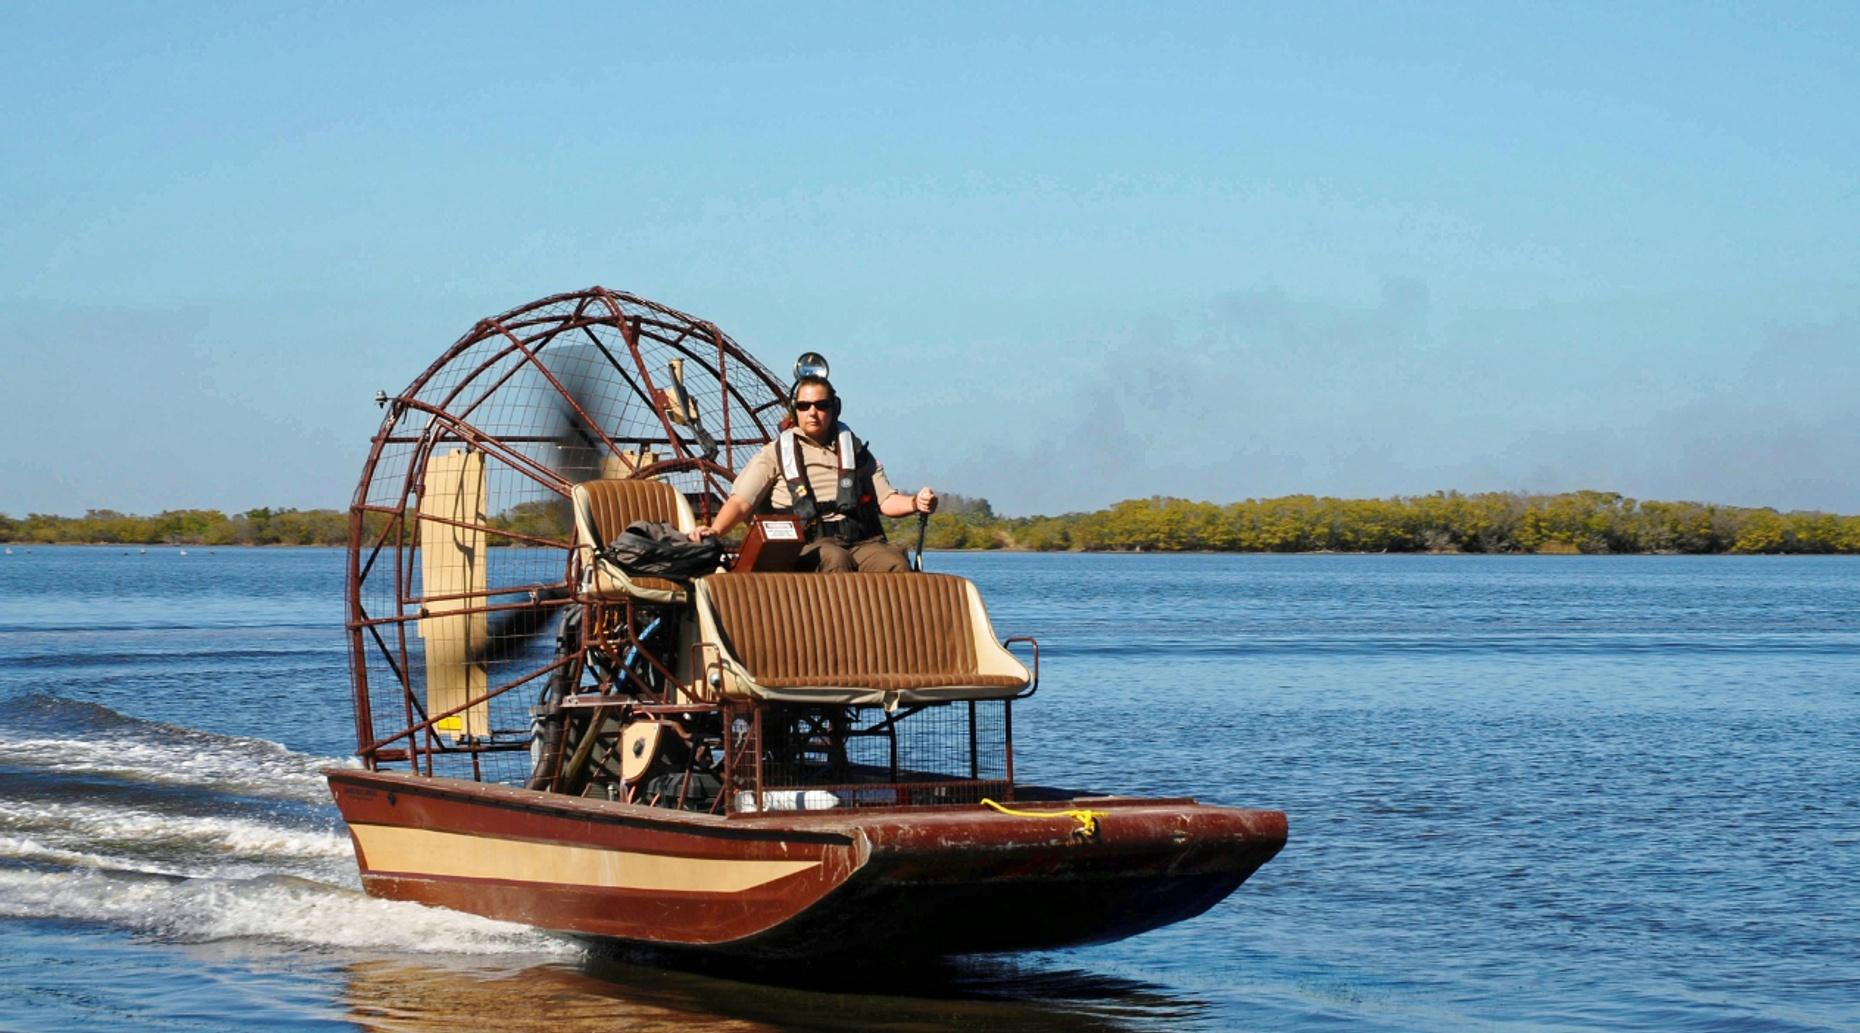 30-Minute Airboat Adventure on Lake Jesup